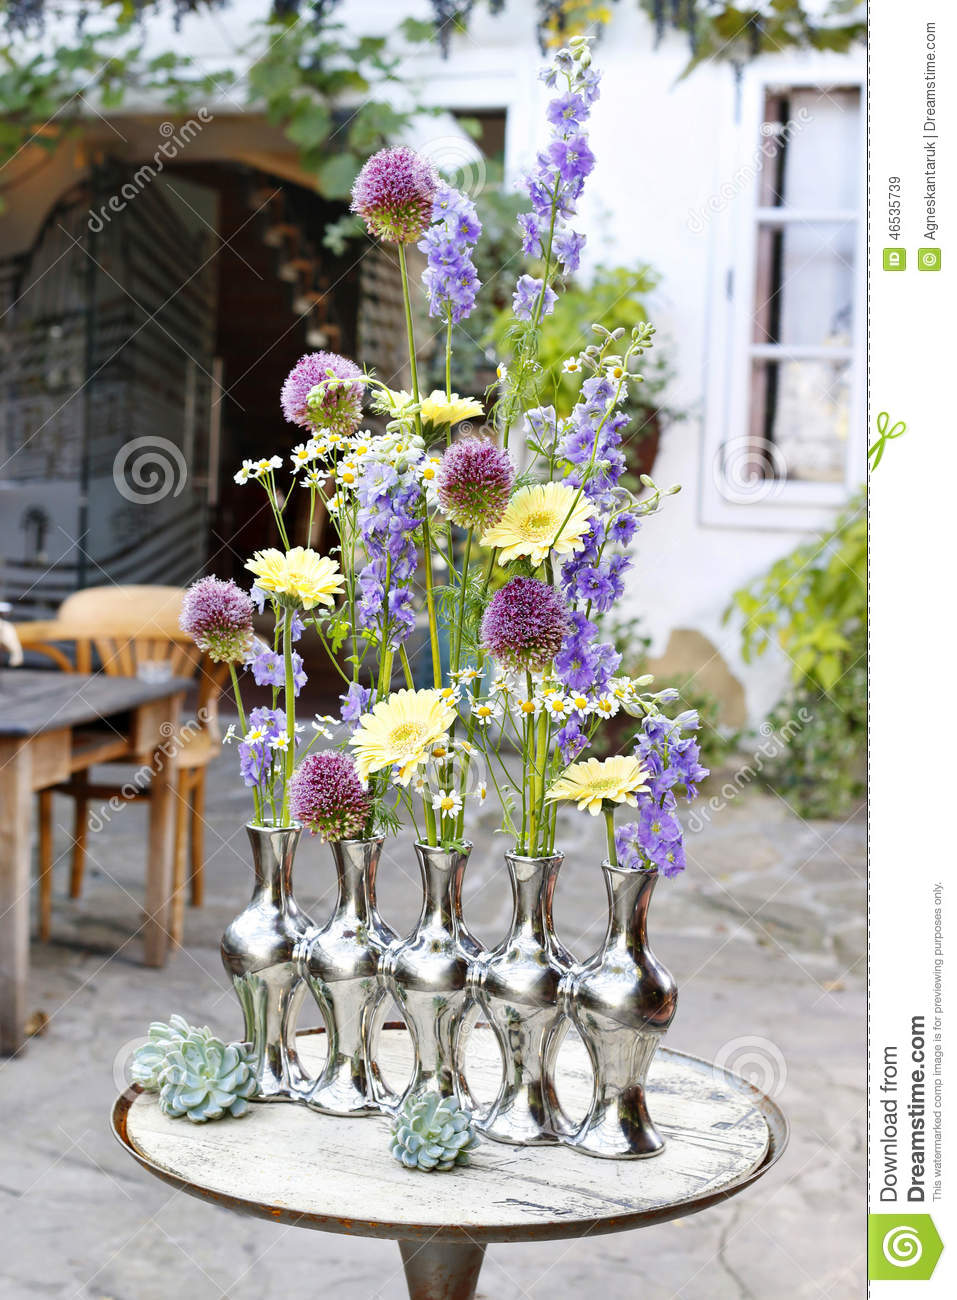 How To Make Floral Arrangement In Silver Vase Stock Image